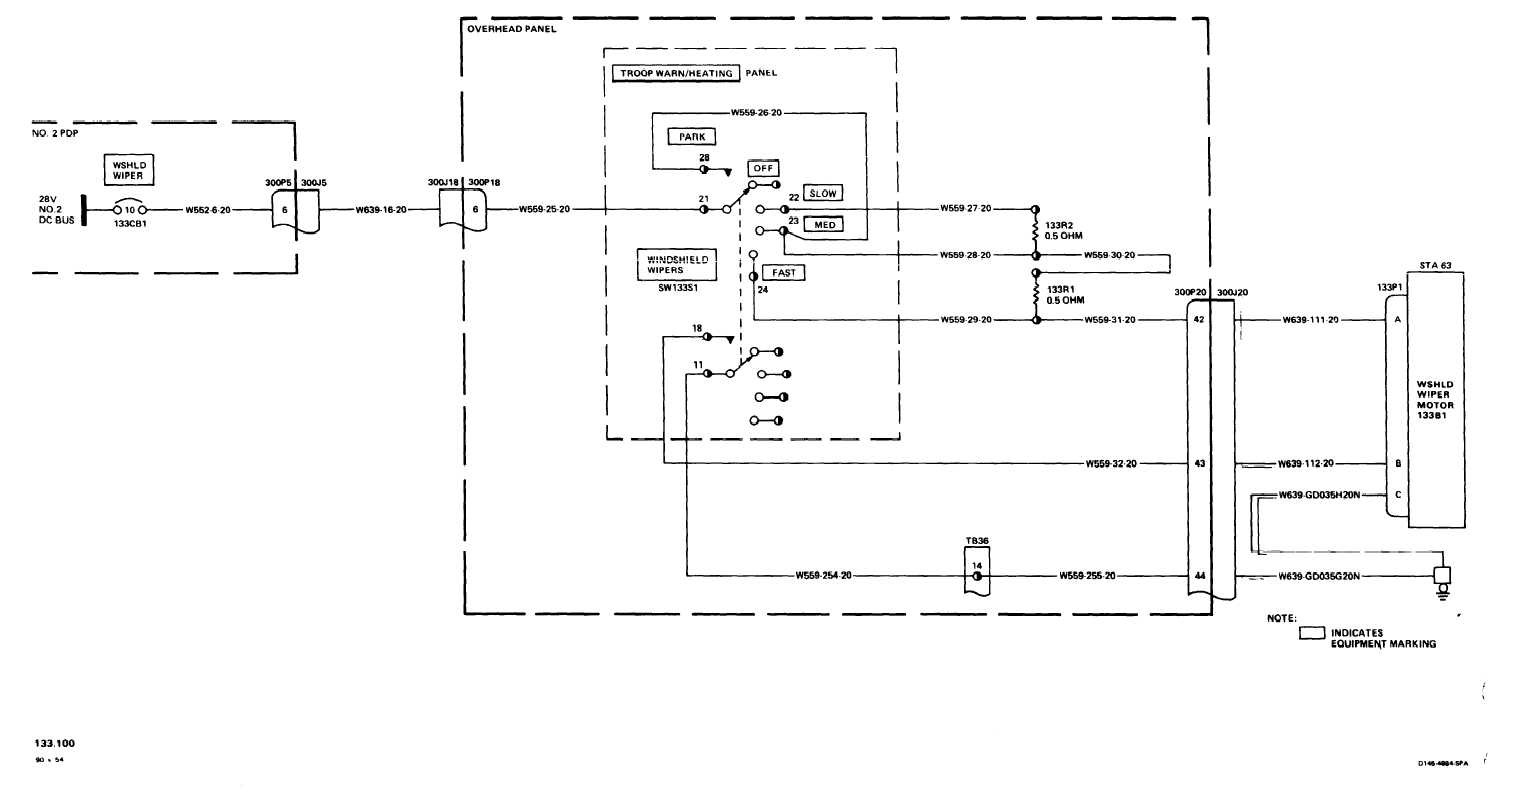 wiper wiring diagram w211